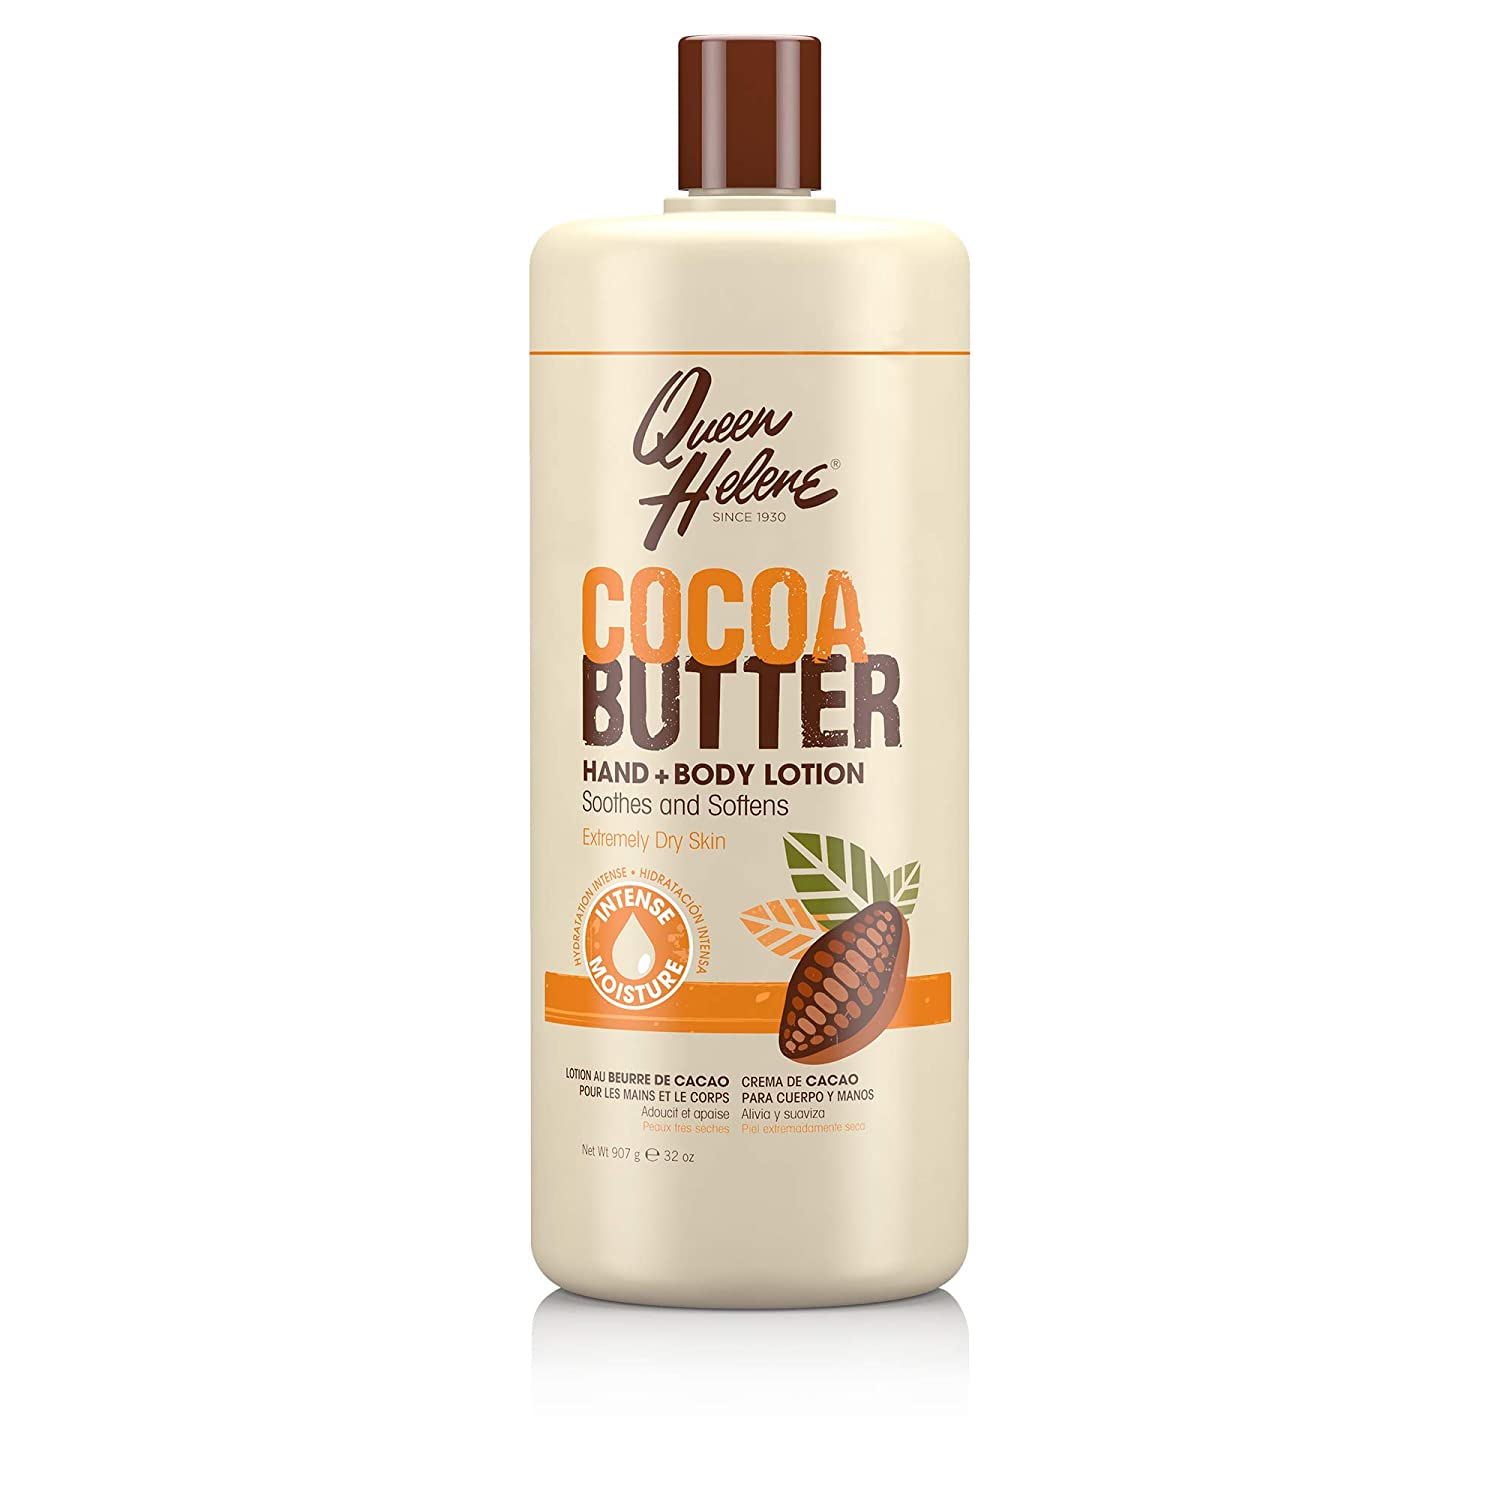 Queen Helene Hand + Body Lotion, Cocoa Butter